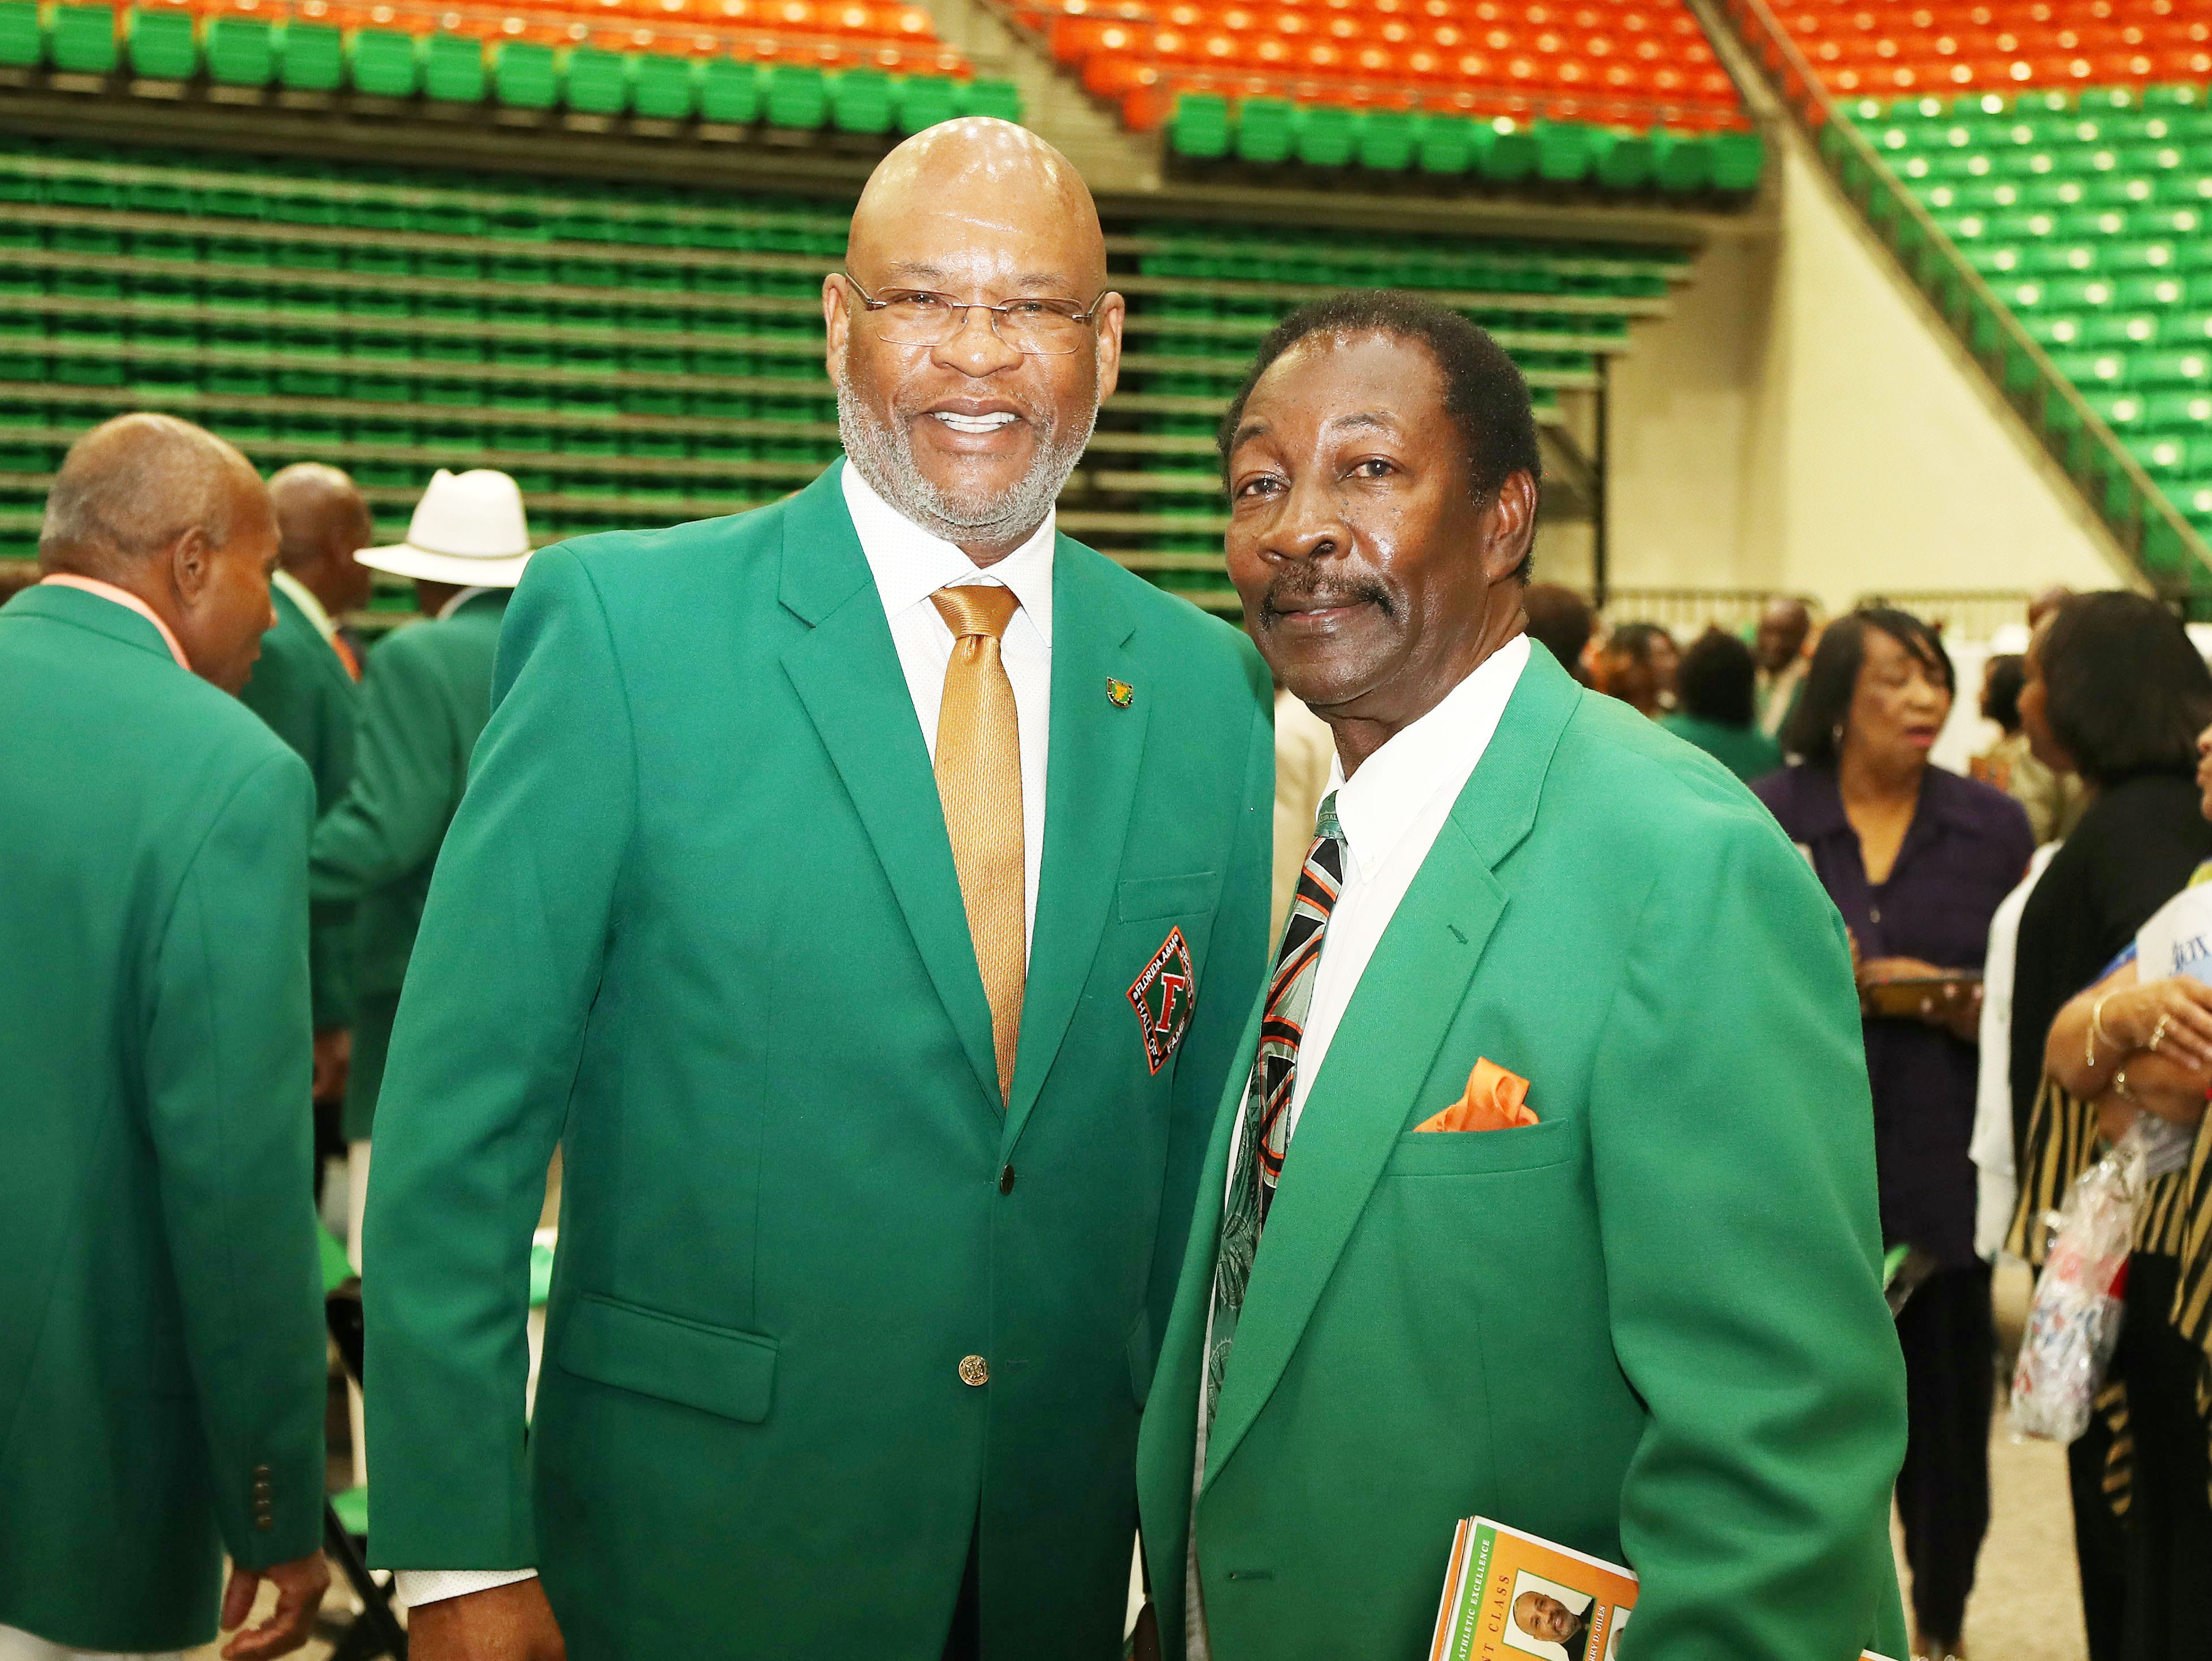 FAMU legends Dr. John Eason (athletics director) and Ken Riley. In additon to being a member of the FAMU Sports Hall of Fame, Riley is enshrined in the Black College Football Hall of Fame.